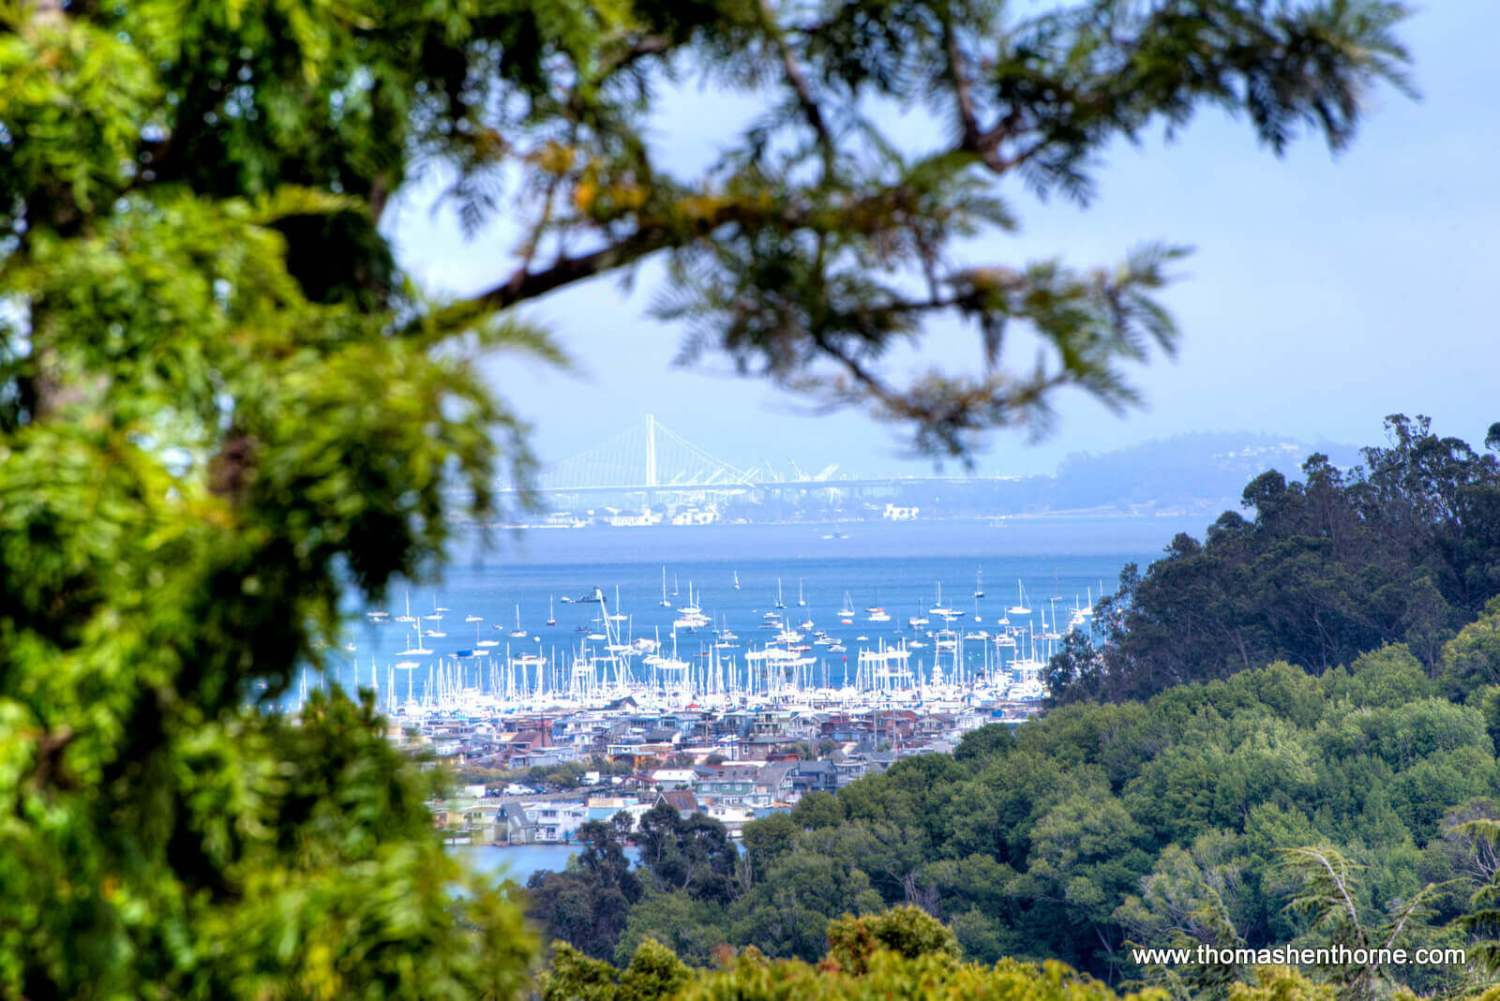 Telephoto view of bay bridge and bay in distance